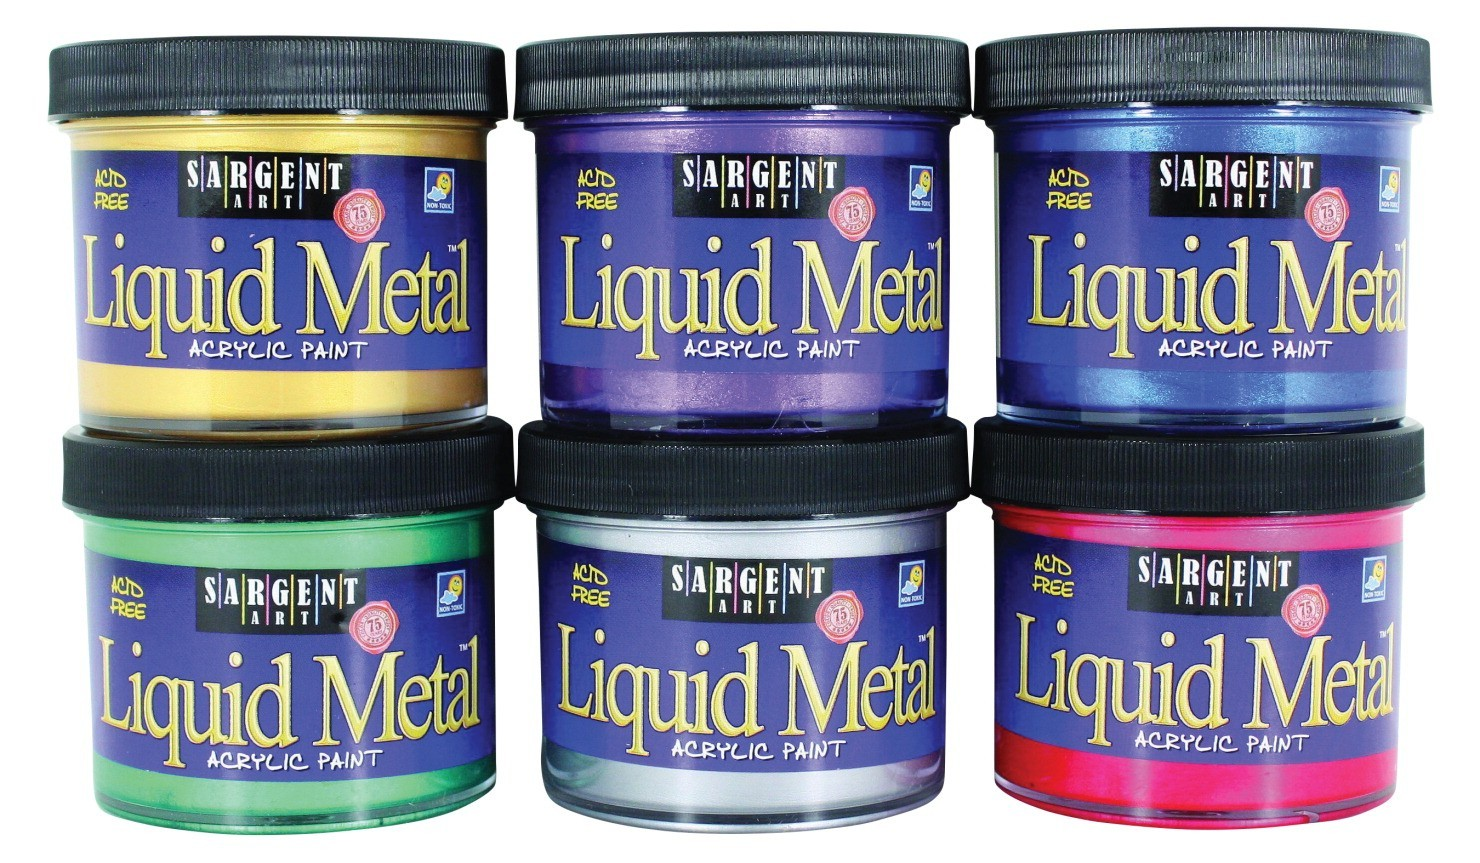 Sargent Art Liquid Metals 9409187-705